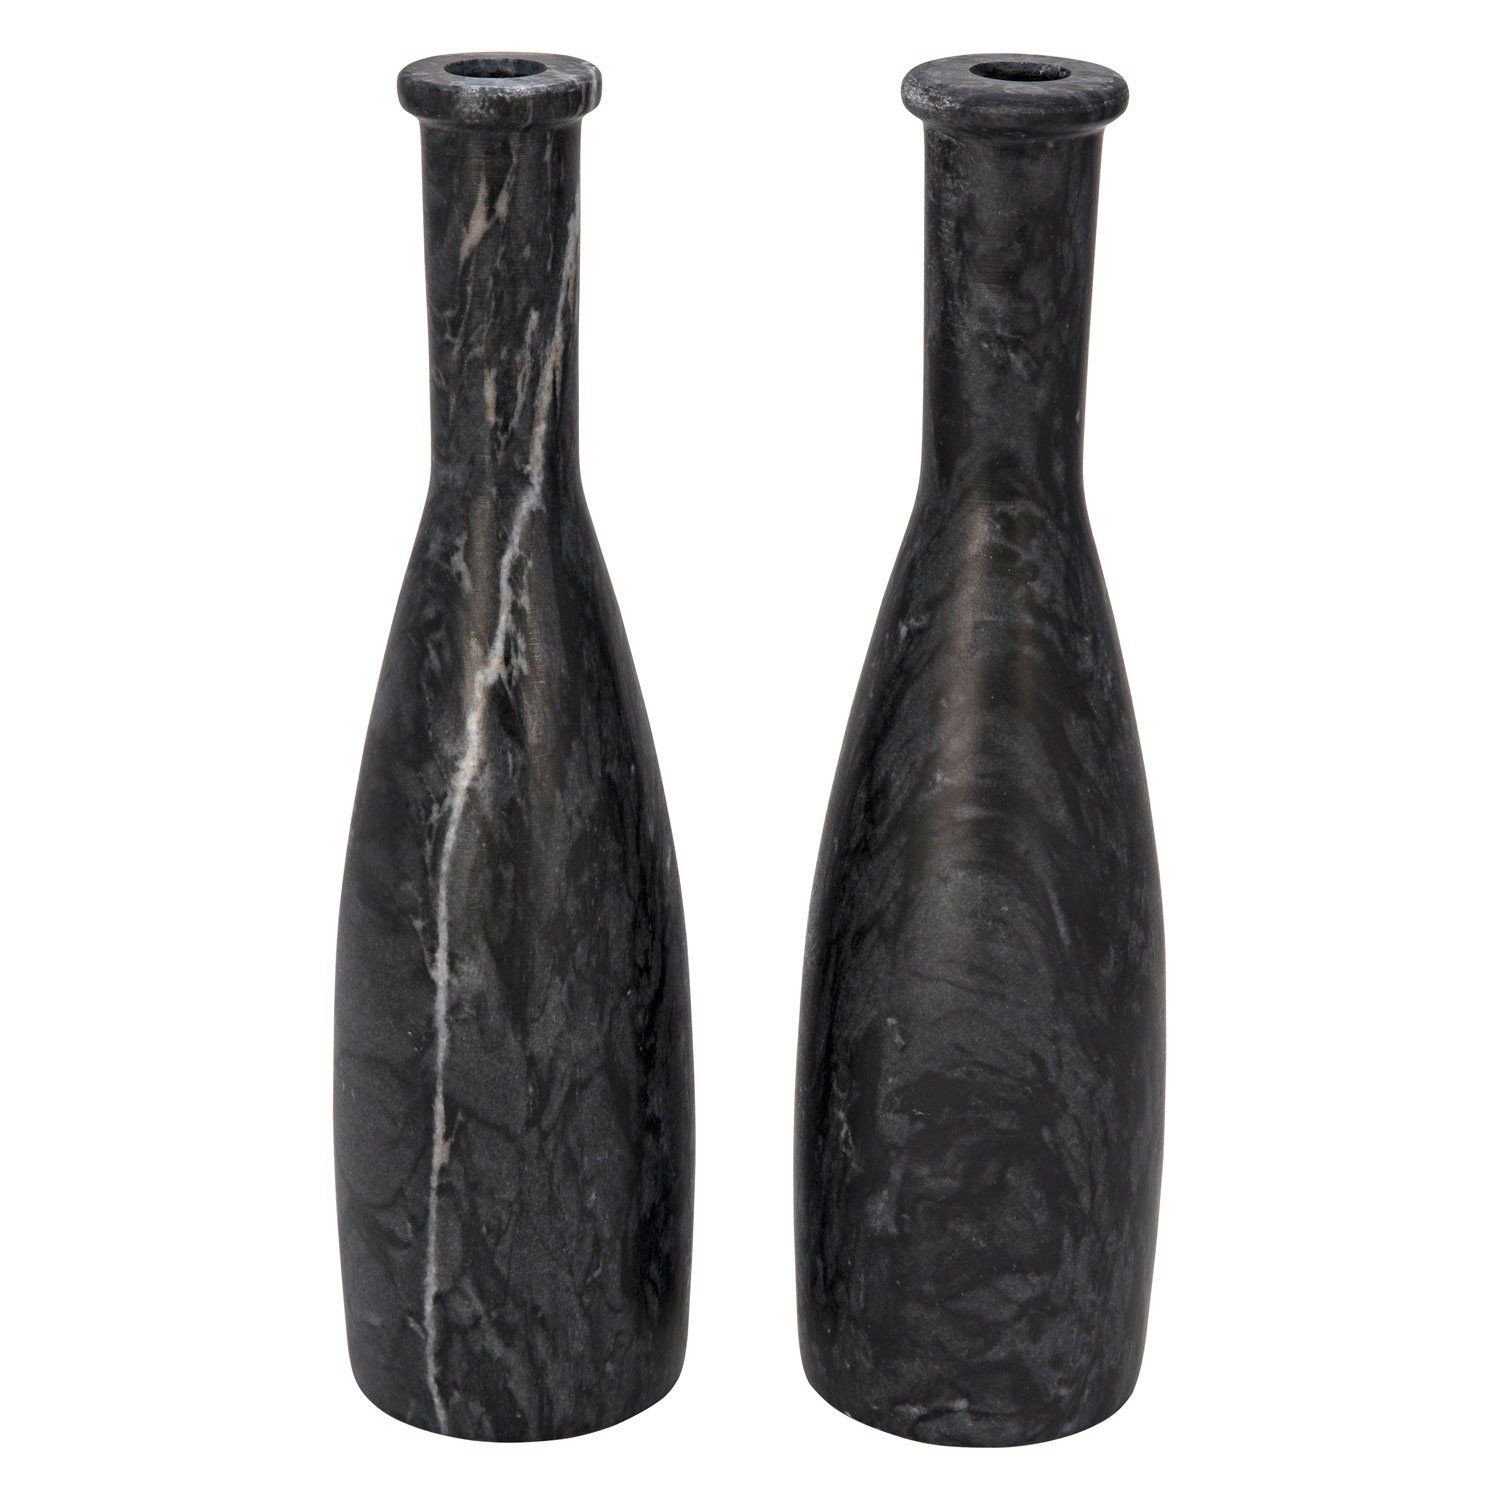 2 Gallon Vase Of Noir Moris Candle Holder Set Of 2 Products Pinterest Candle Pertaining to Noir Moris Candle Holder Set Of 2